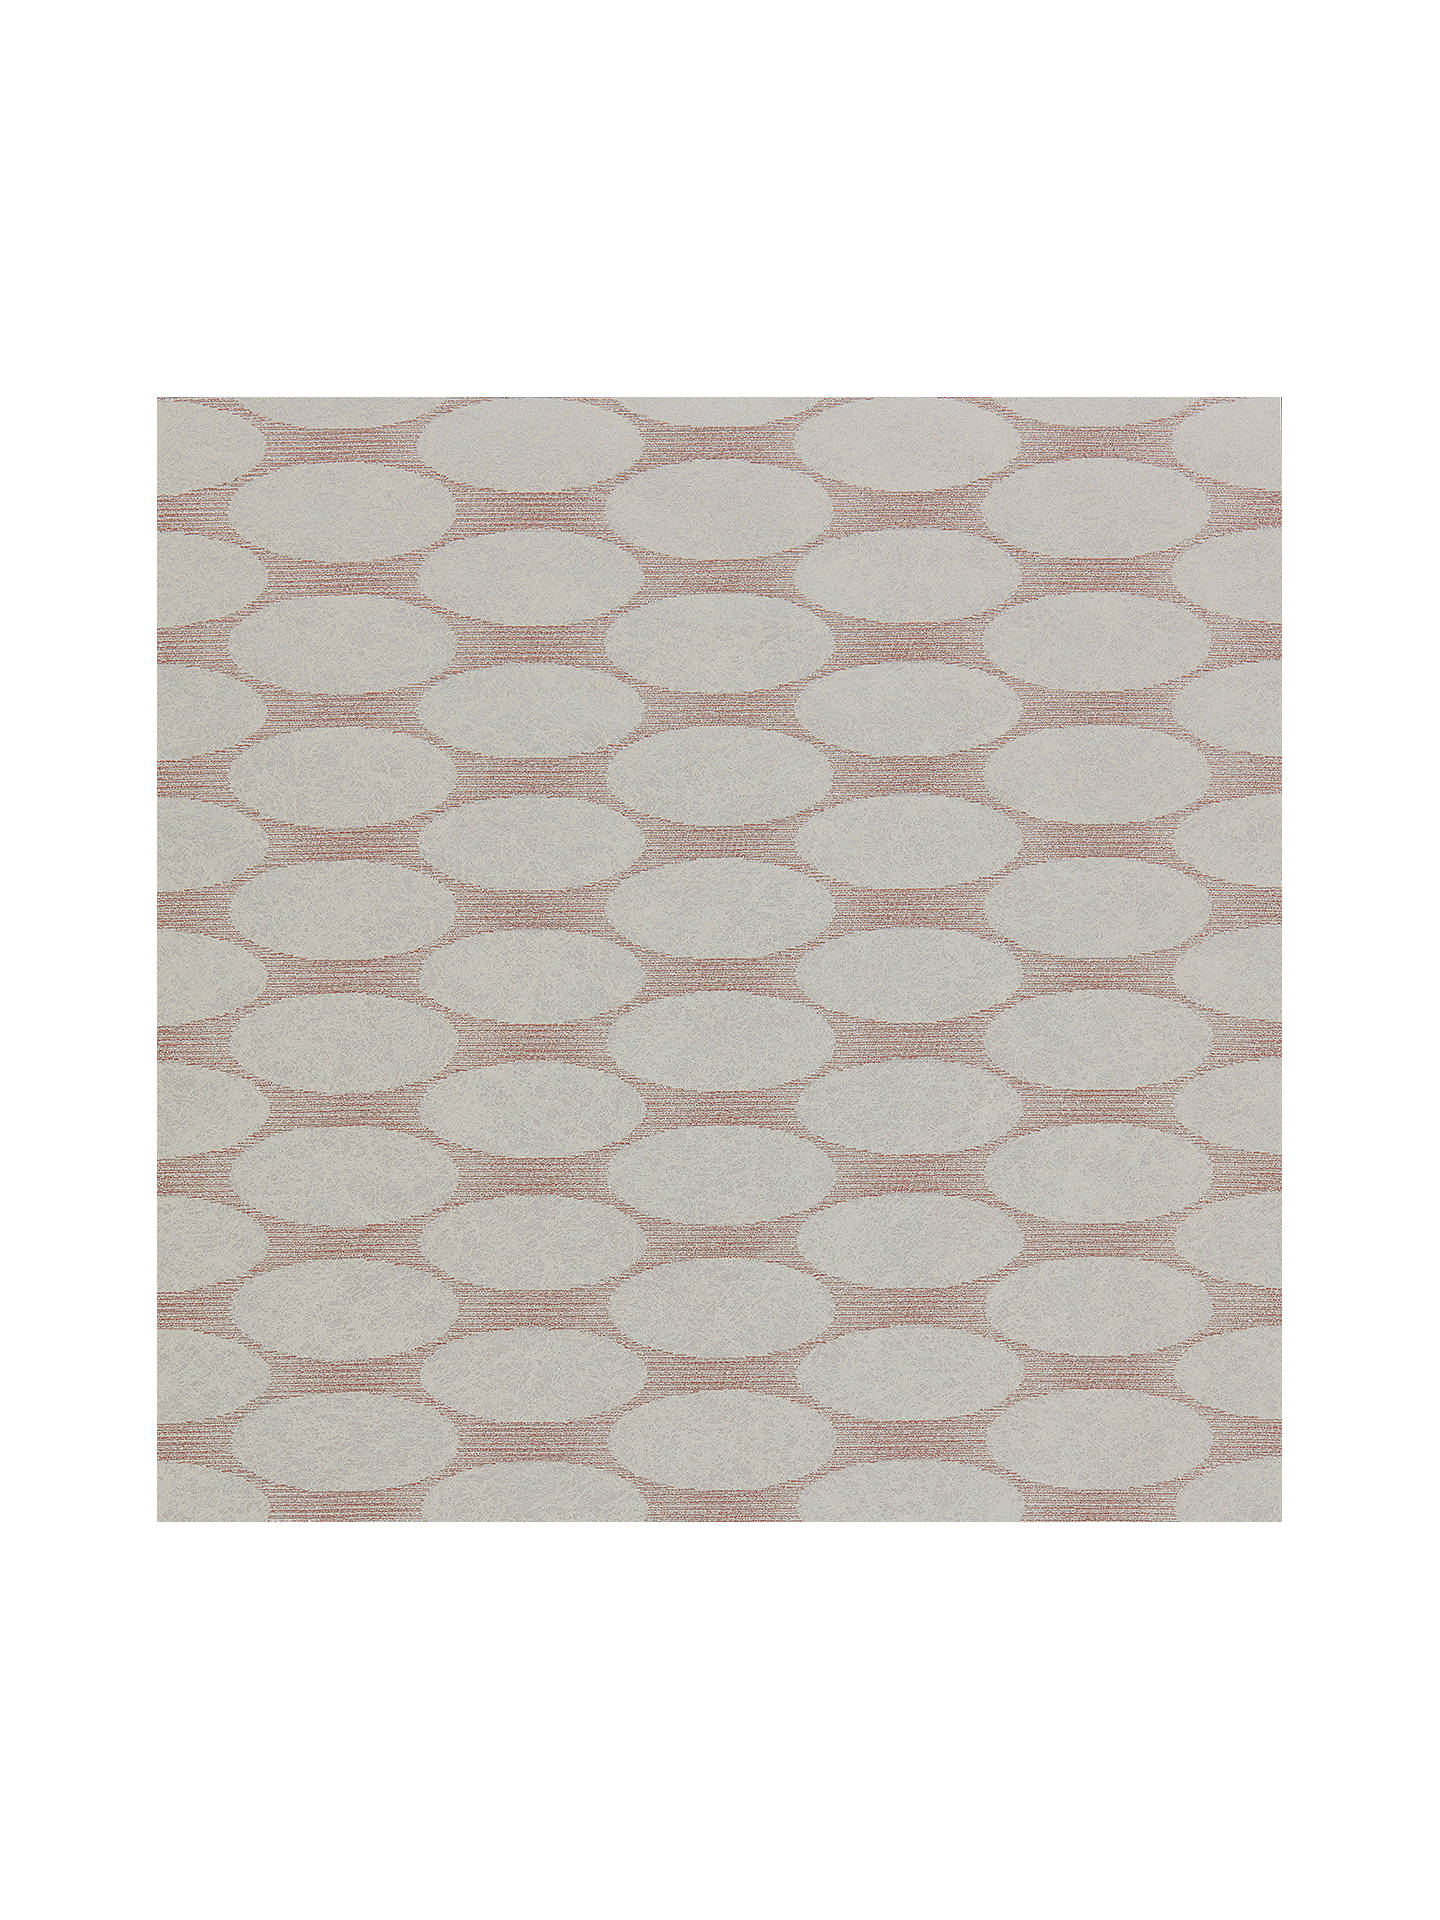 Buy Anthology Cazimi Wallpaper, Copper / Silver 111355 Online at johnlewis.com